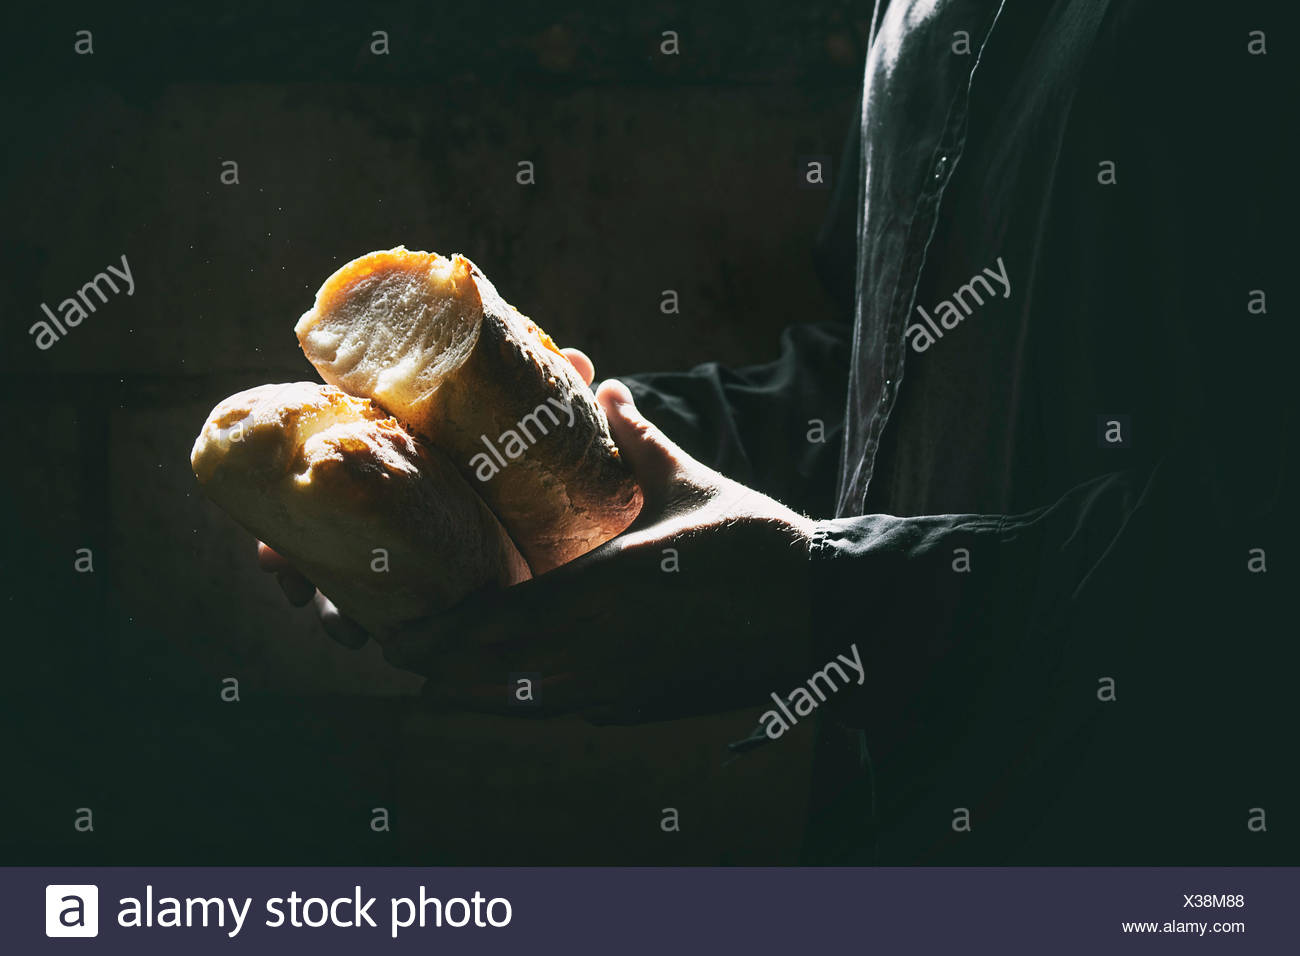 Loaf of fresh baked wheat bread in man's hands in sunshine. Rustic day light in dark room. - Stock Image